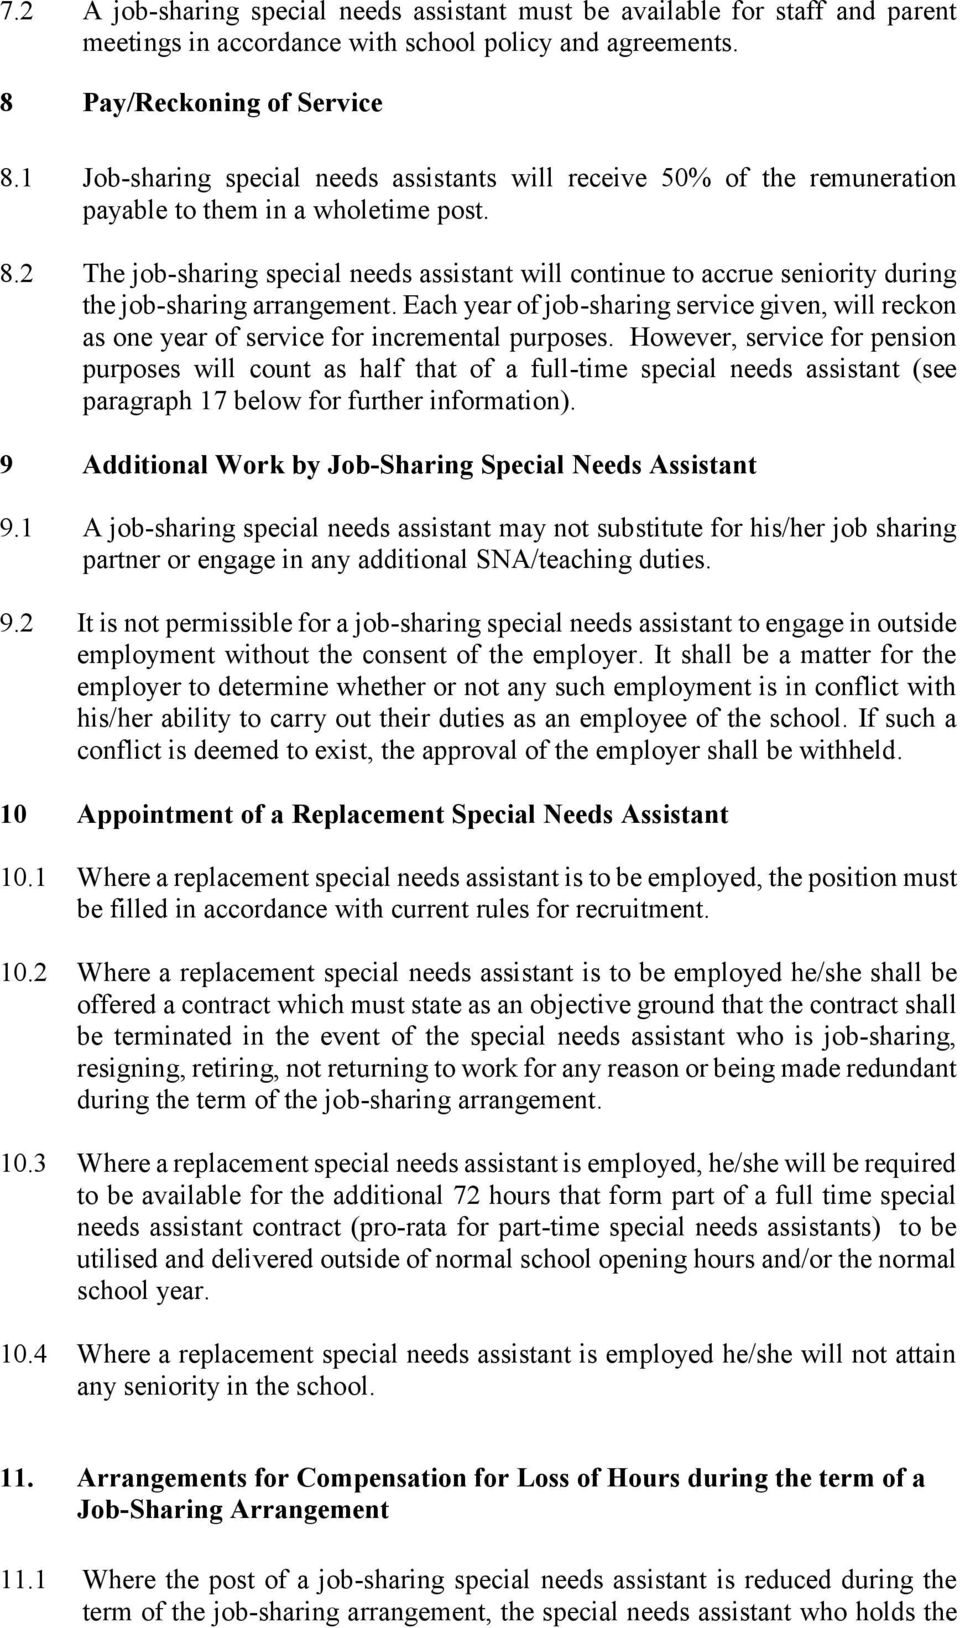 2 The job-sharing special needs assistant will continue to accrue seniority during the job-sharing arrangement.